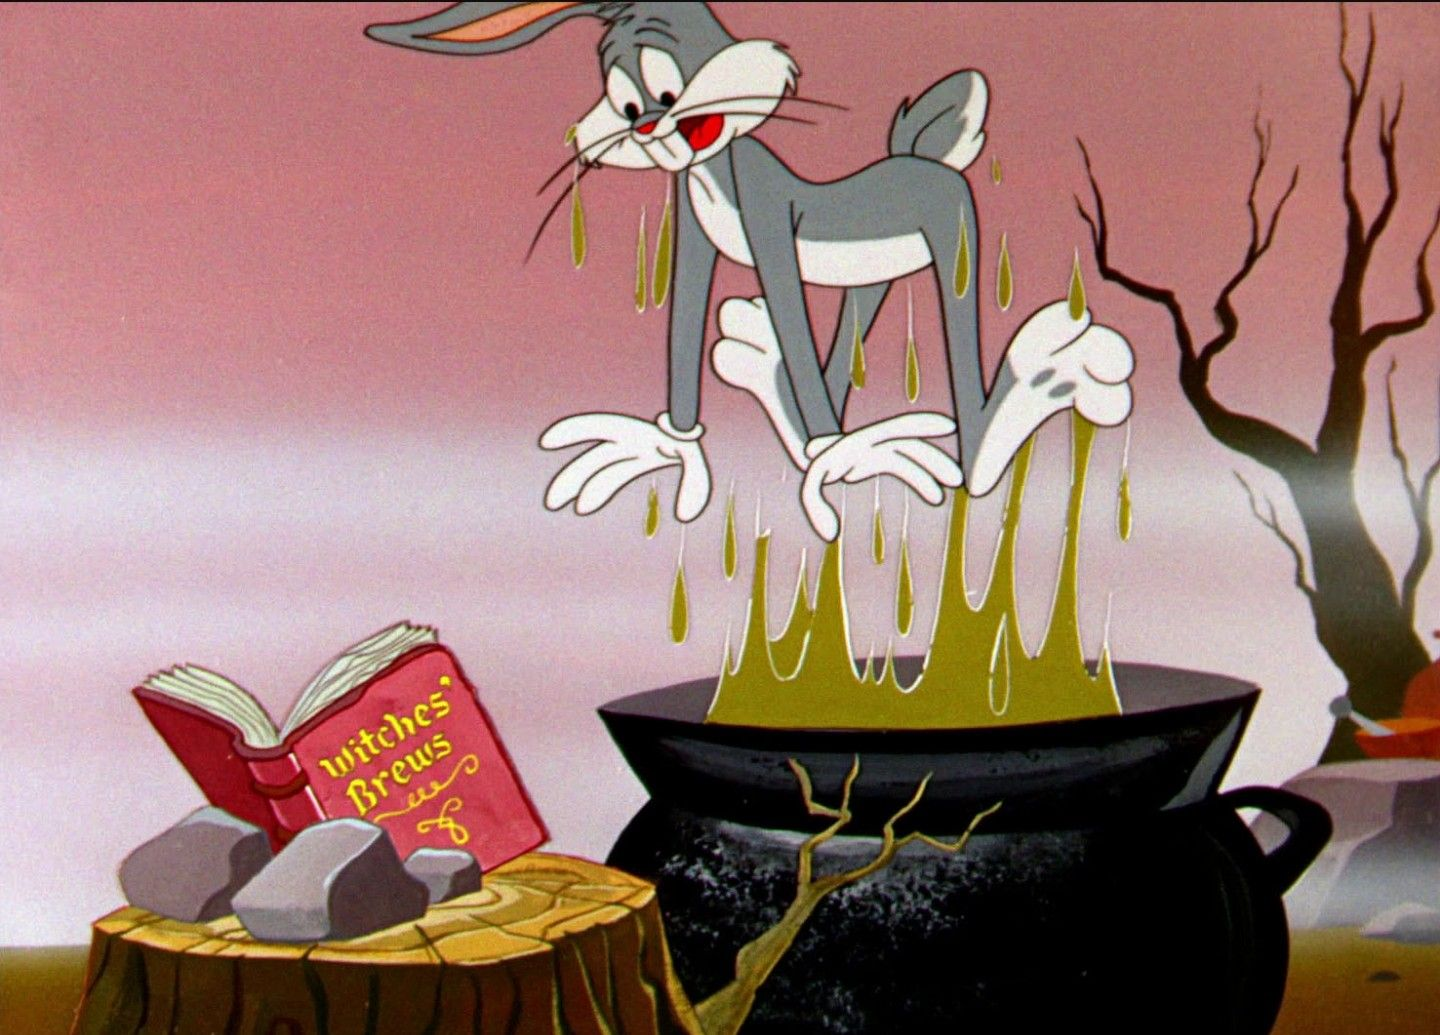 Pin by Bryon Farrant on Looney, Looney Toons Bugs bunny